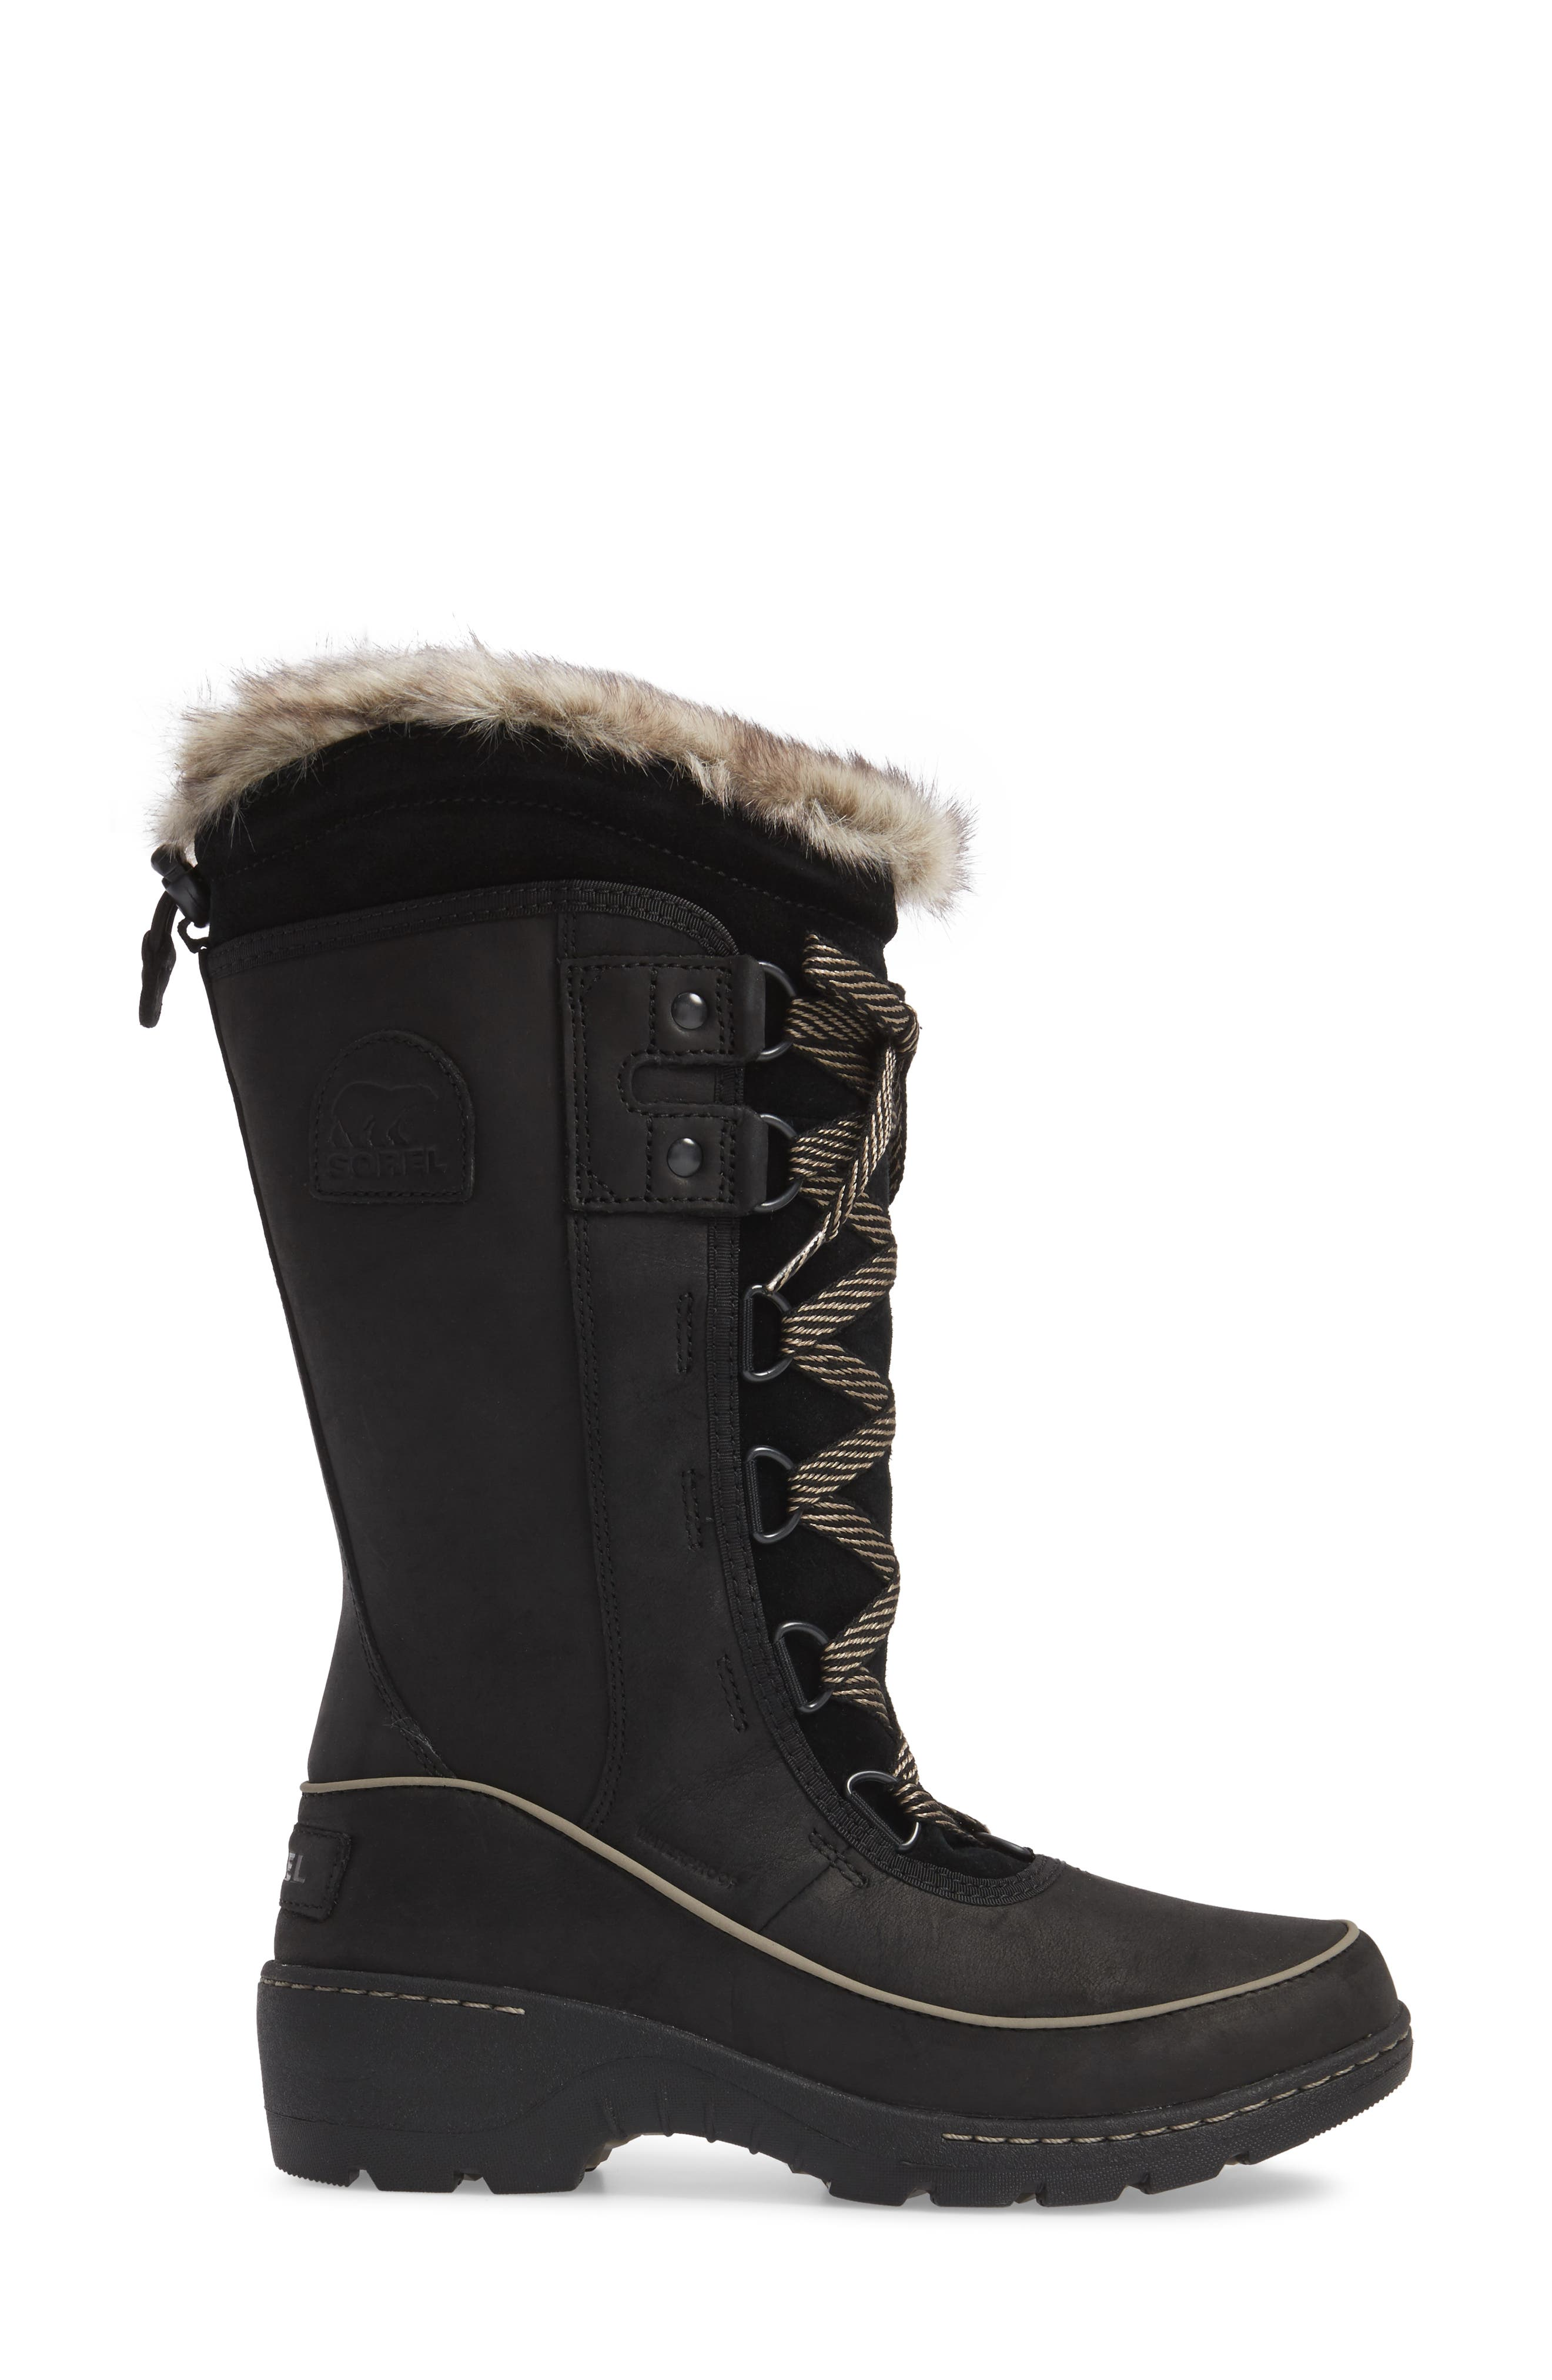 Alternate Image 3  - SOREL Tivoli II Insulated Winter Boot with Faux Fur Trim (Women)